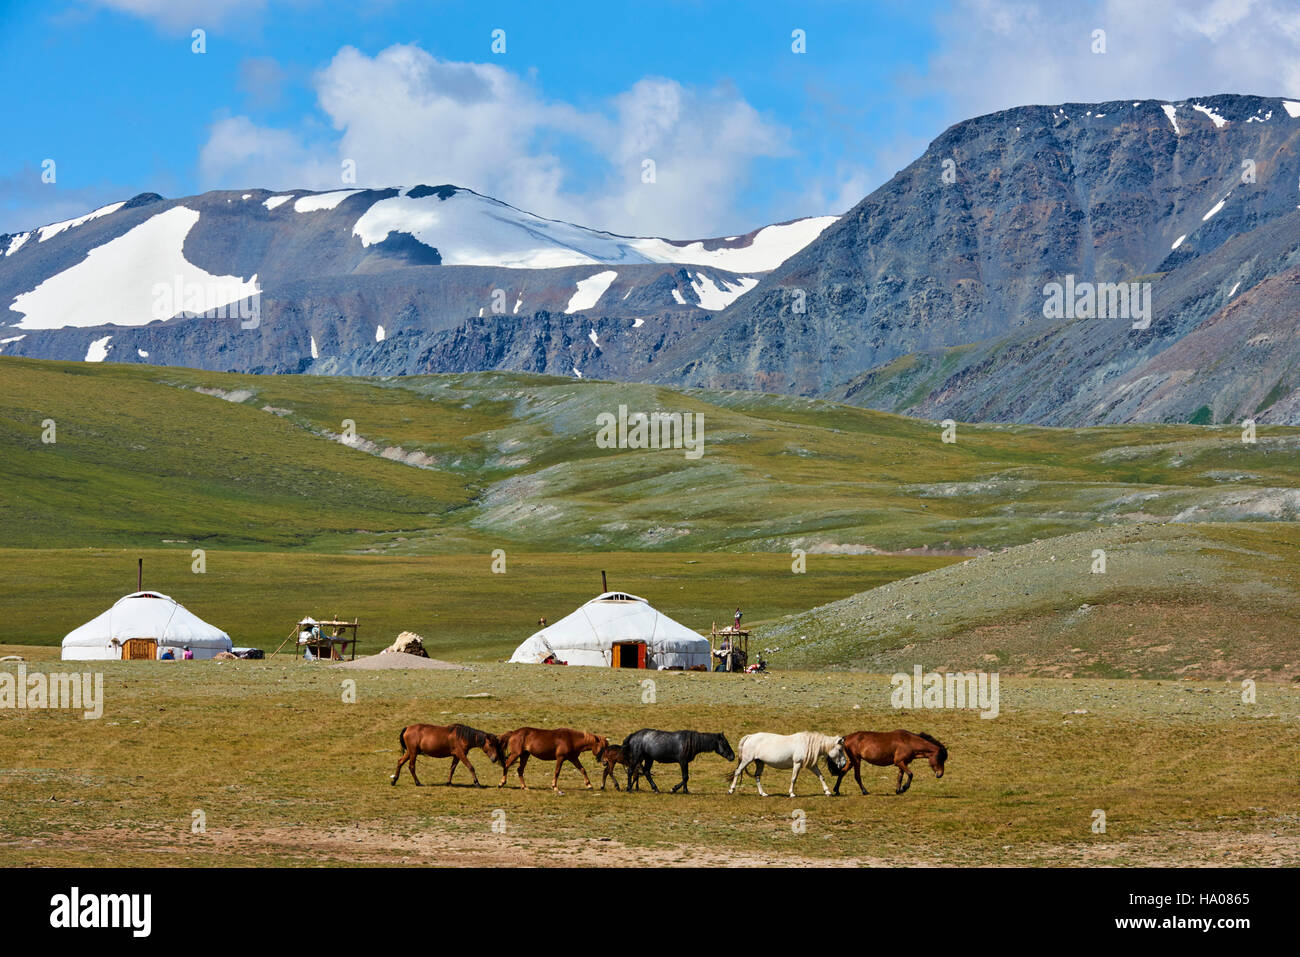 Mongolia, Bayan-Ulgii province, western Mongolia, National parc of Tavan Bogd, the 5 highest summit of the Altay - Stock Image